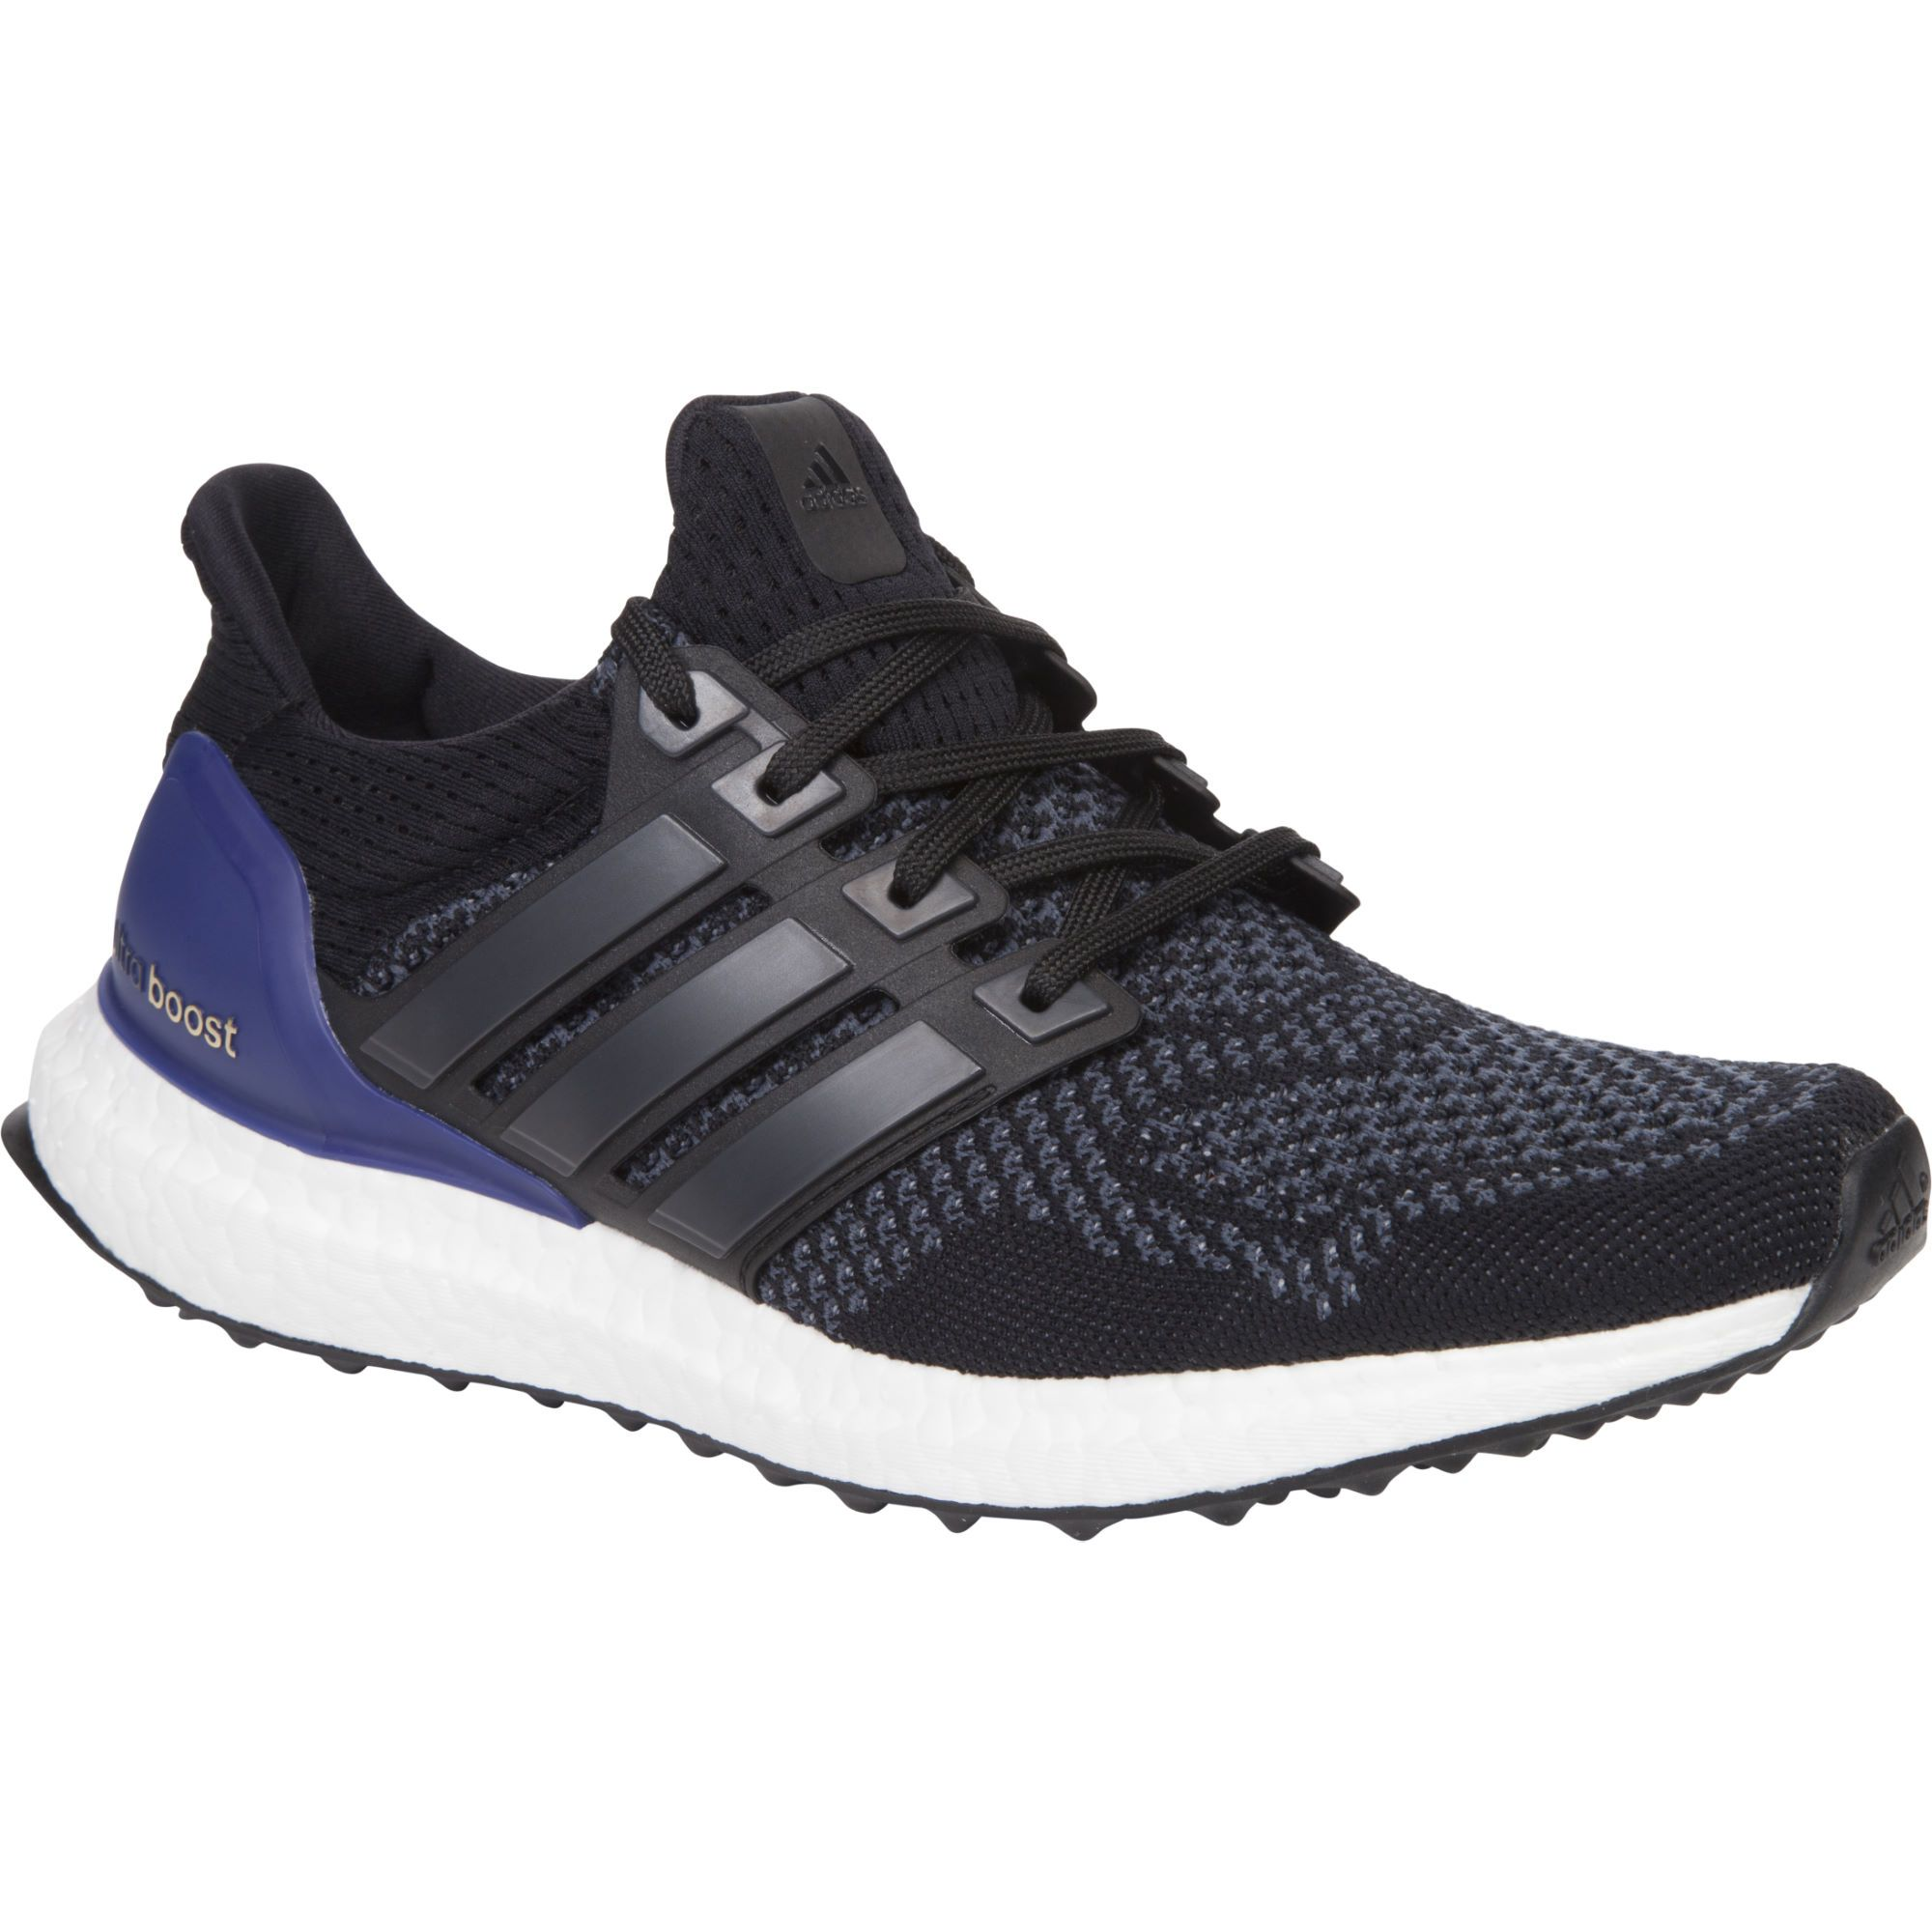 new concept 7ab6c dfe93 Wiggle | Adidas Ultra Boost Shoes - SS15 | Cushion Running ...